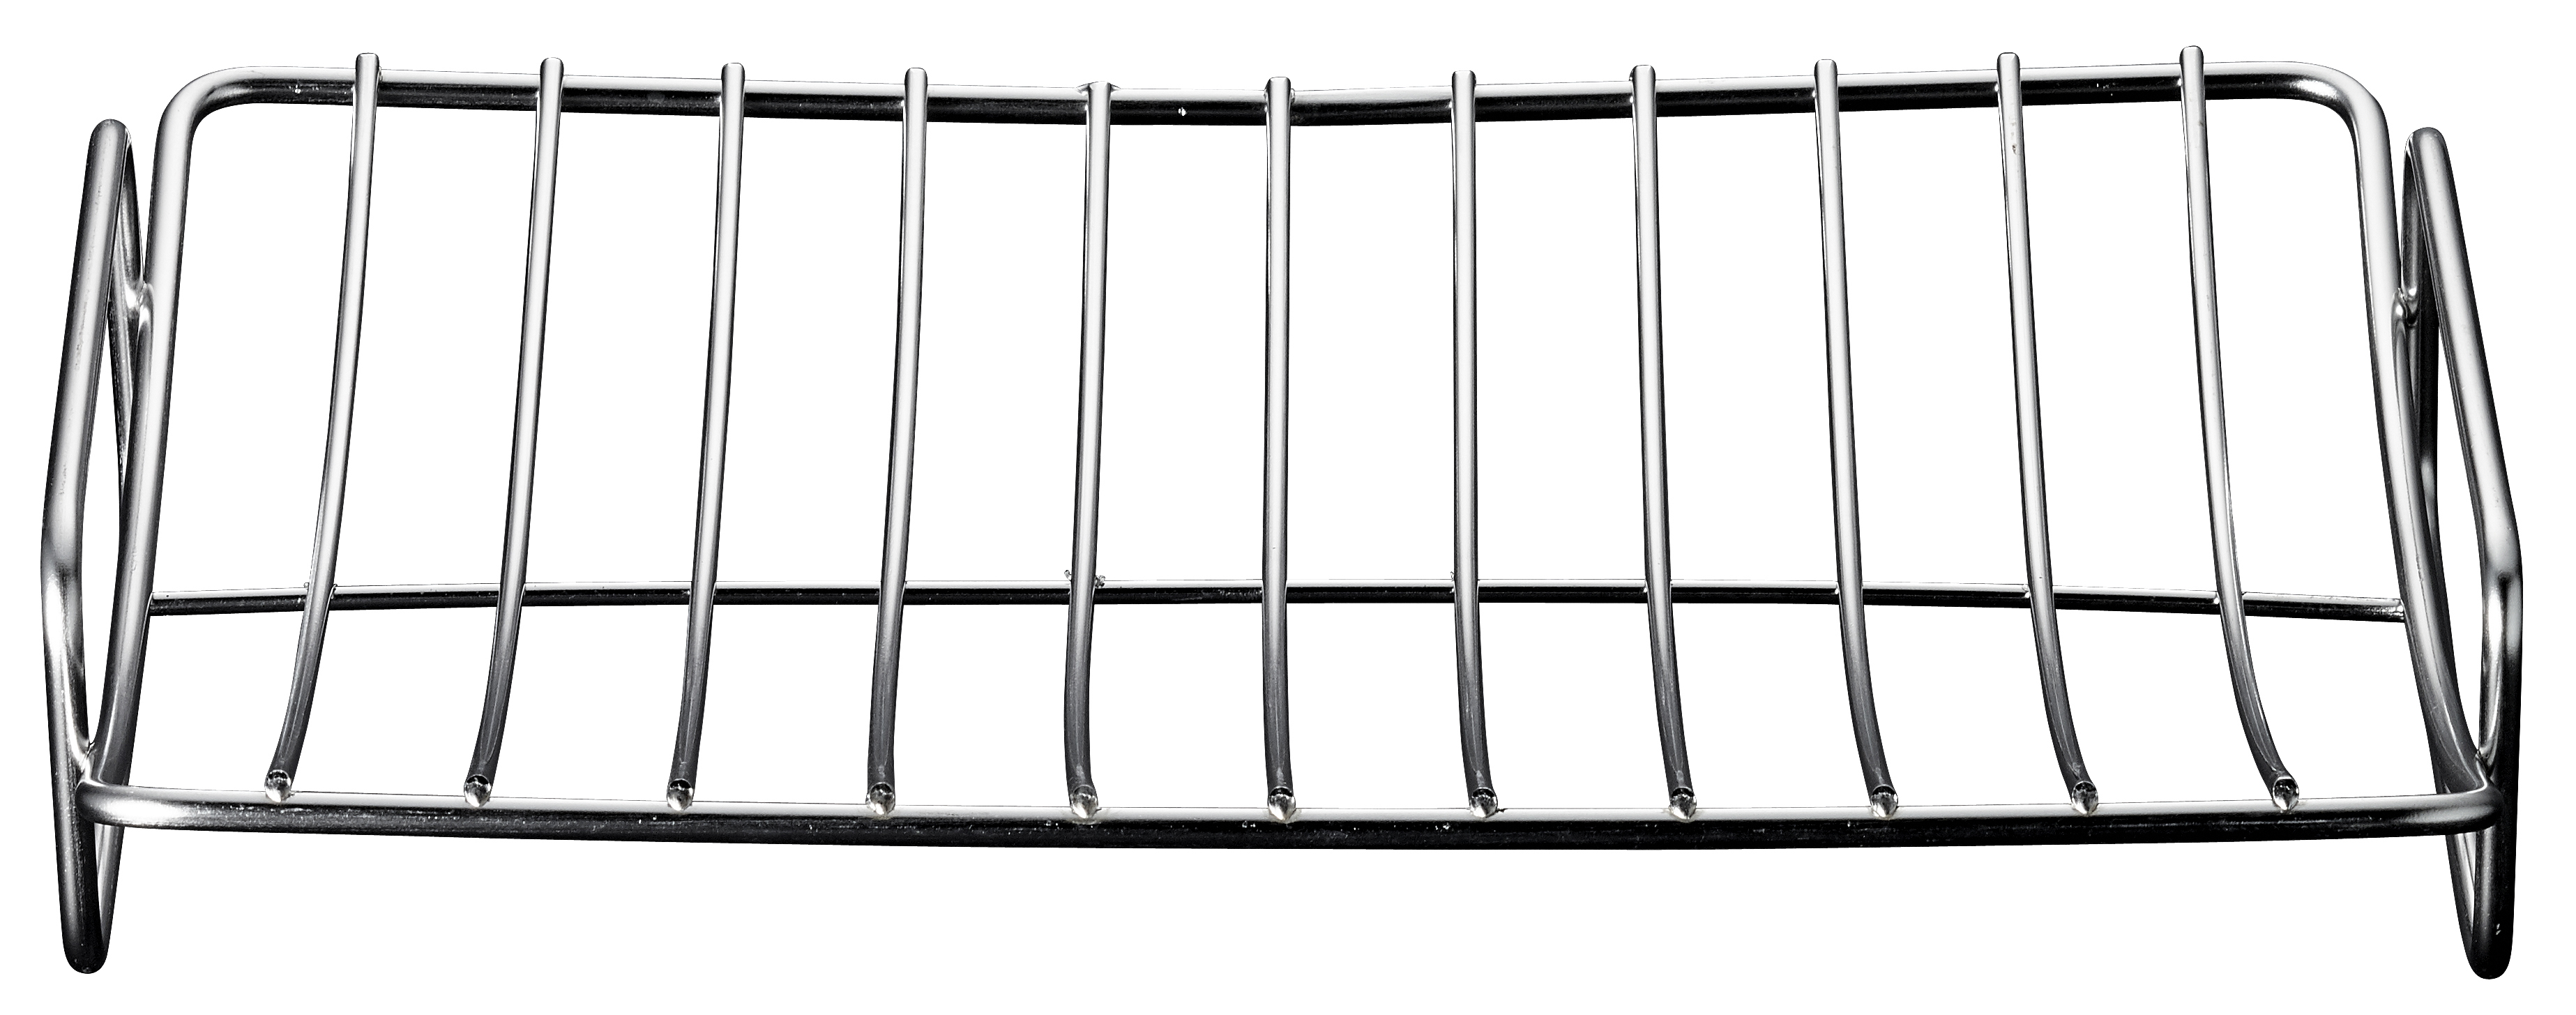 31x24.5cm Rack for Roaster 35321200 - Accessories, 31 x 24.5cm